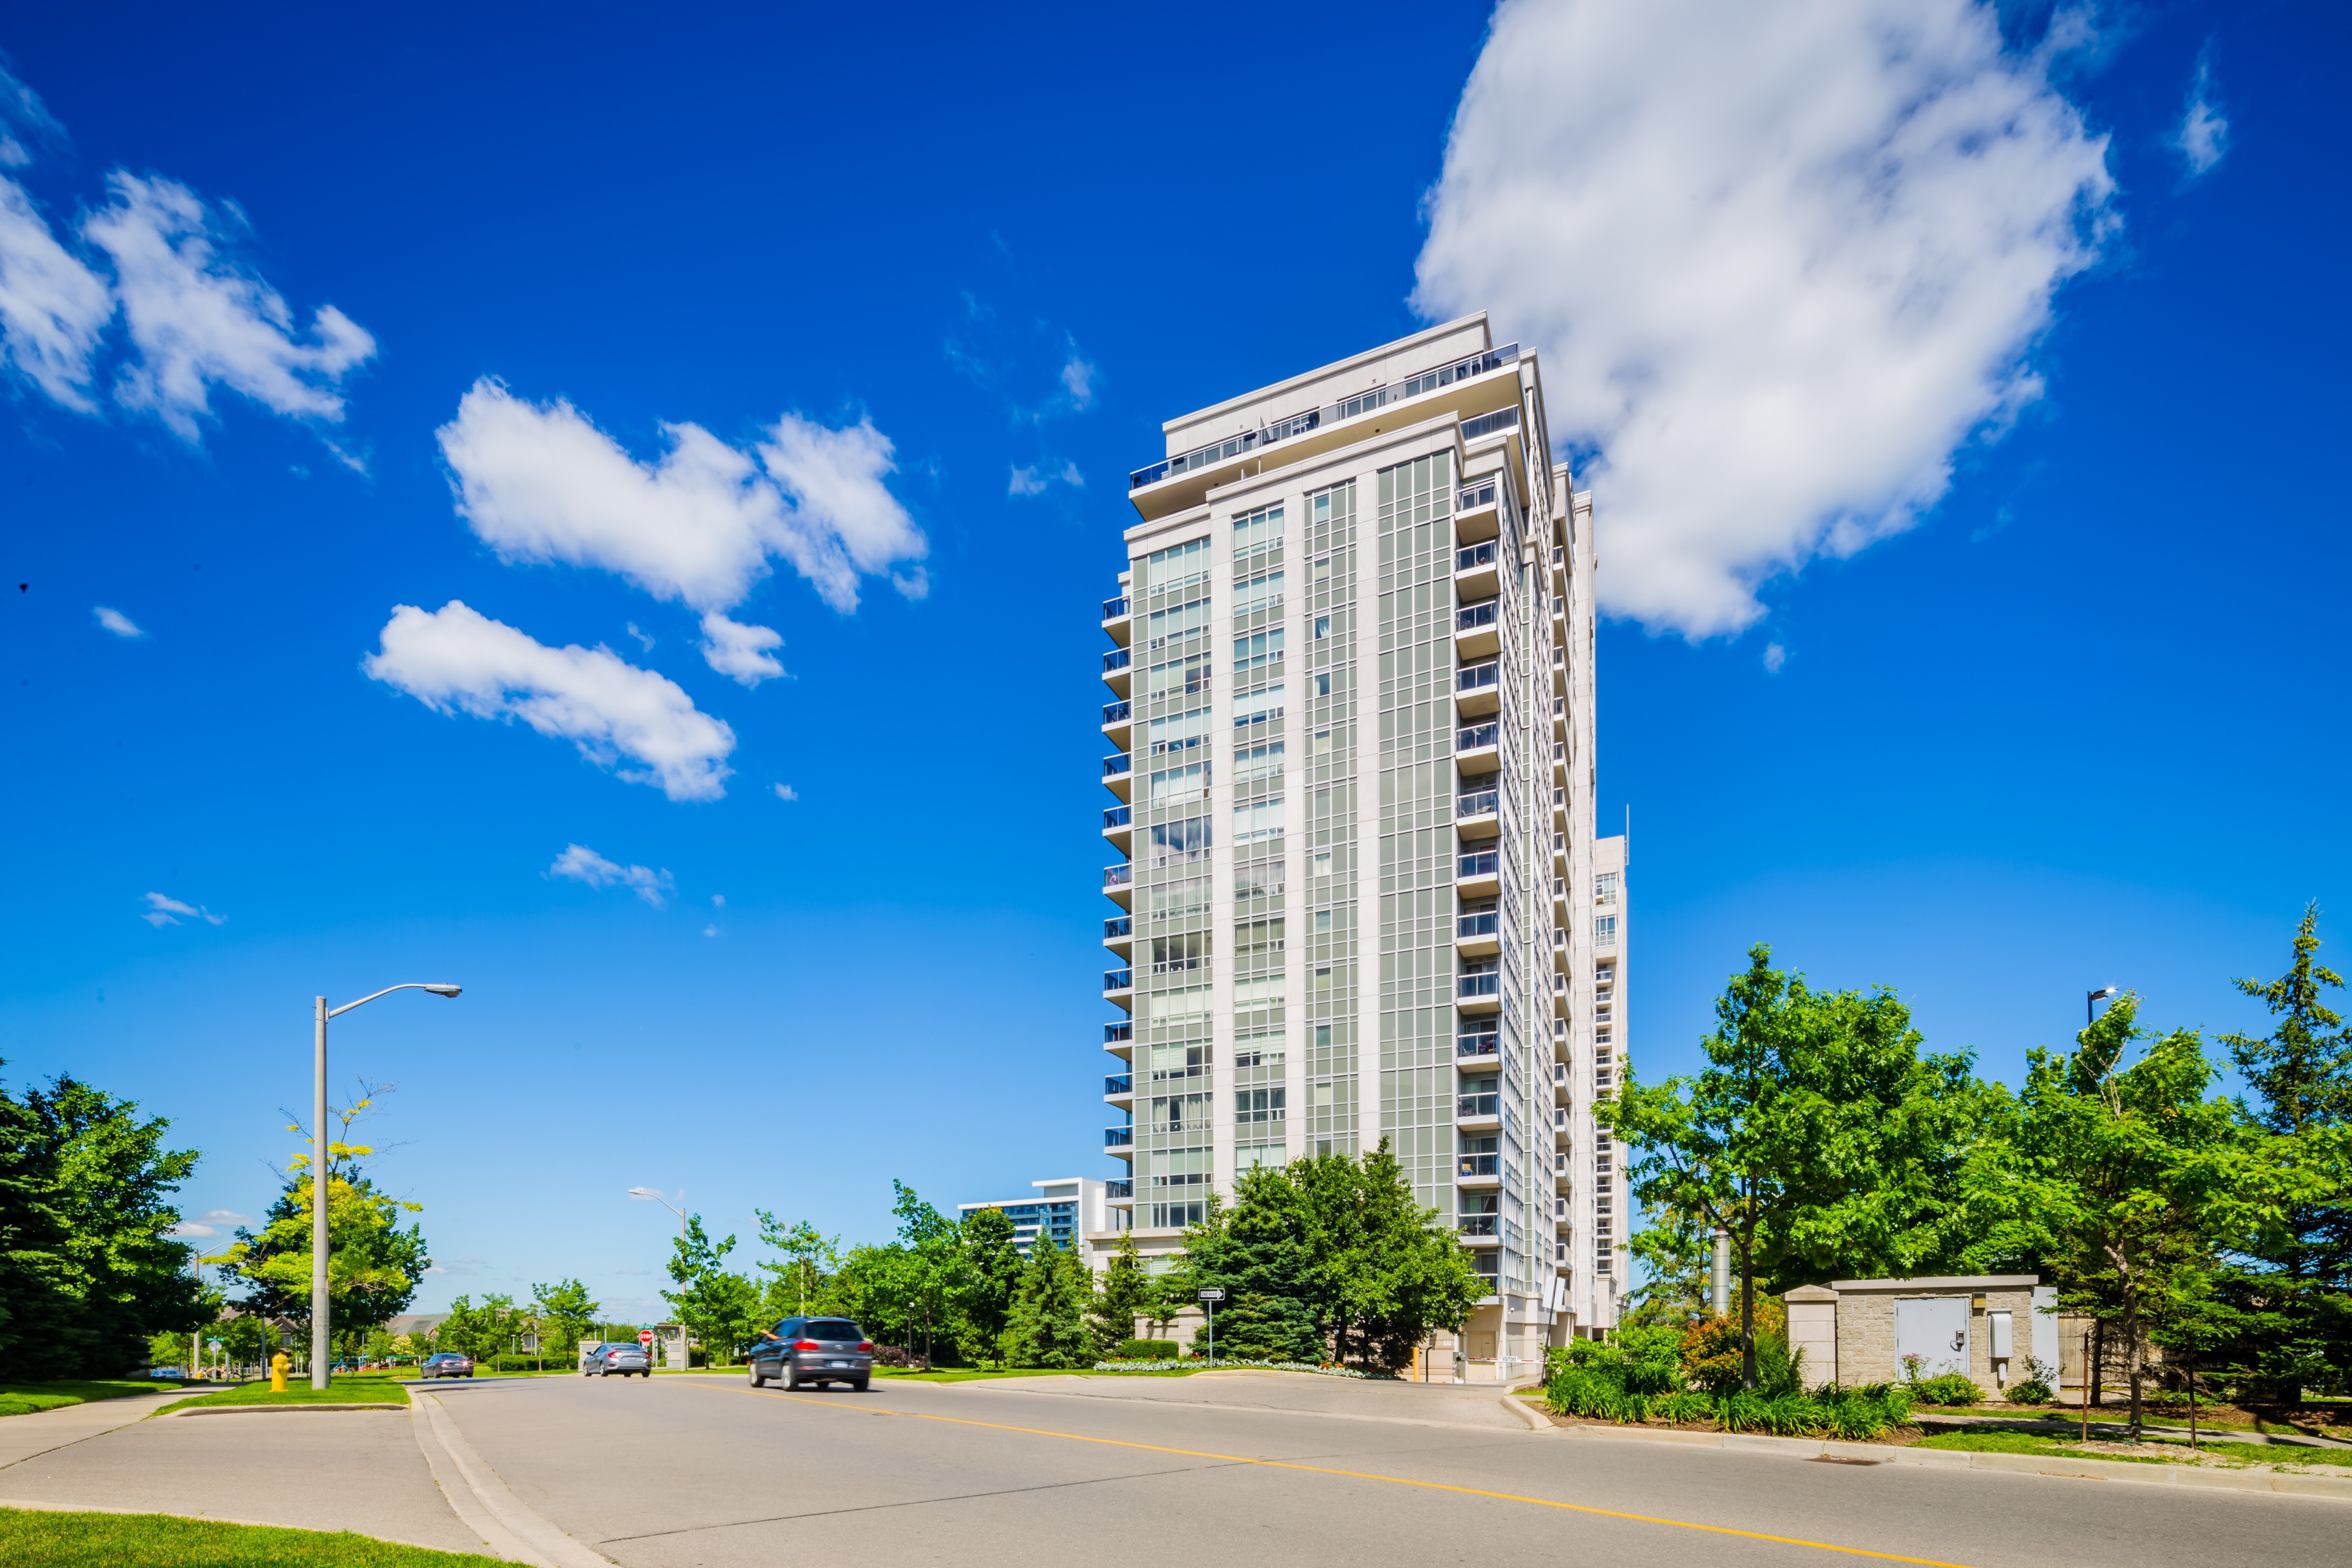 The Beverley at Thornhill City Centre at 15 N Park Rd, Vaughan 1